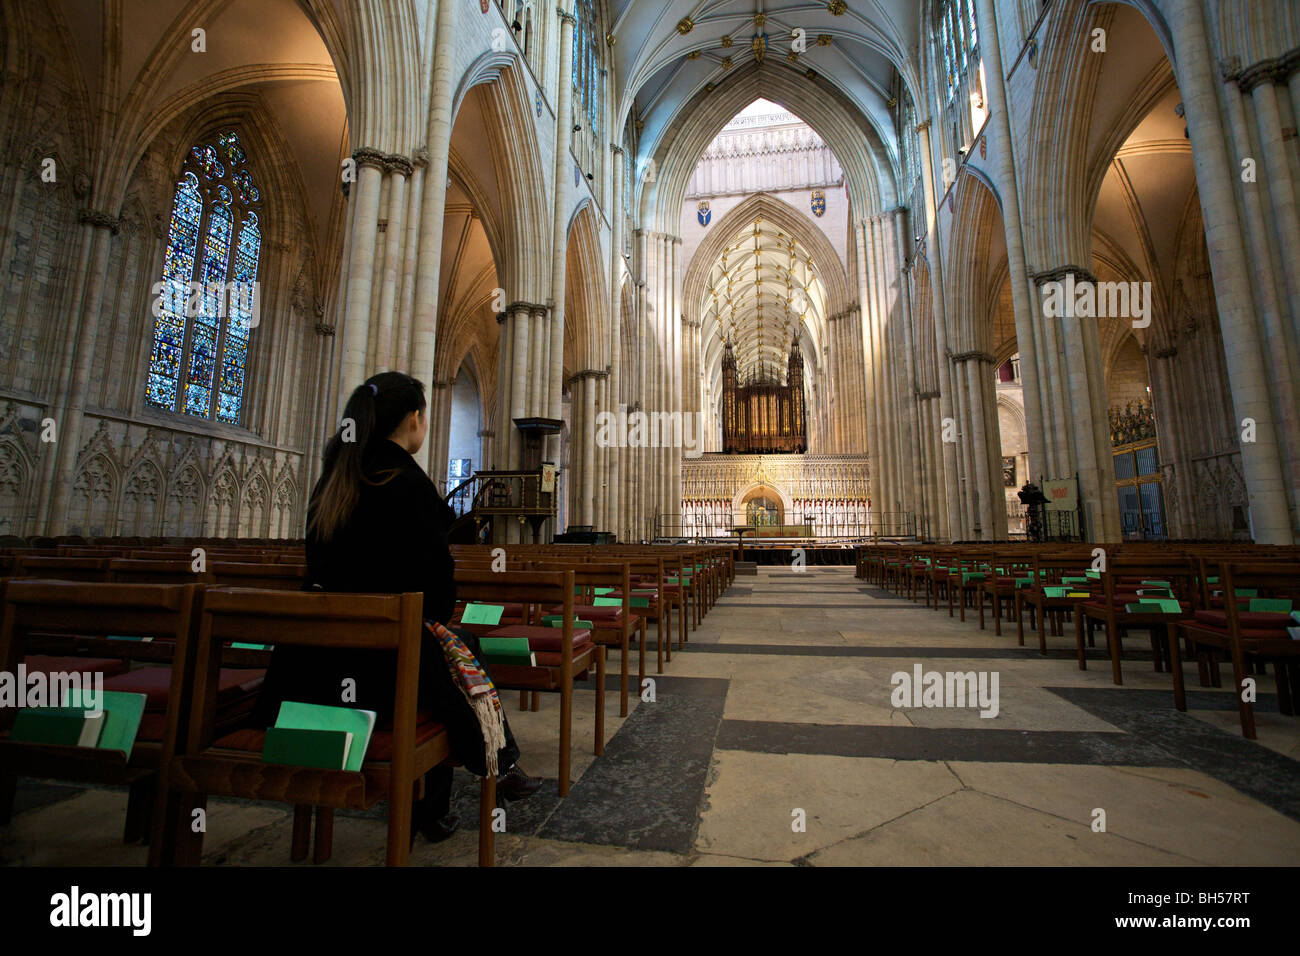 A girl sits alone on the pews in York Minster Abbey, UK Stock Photo